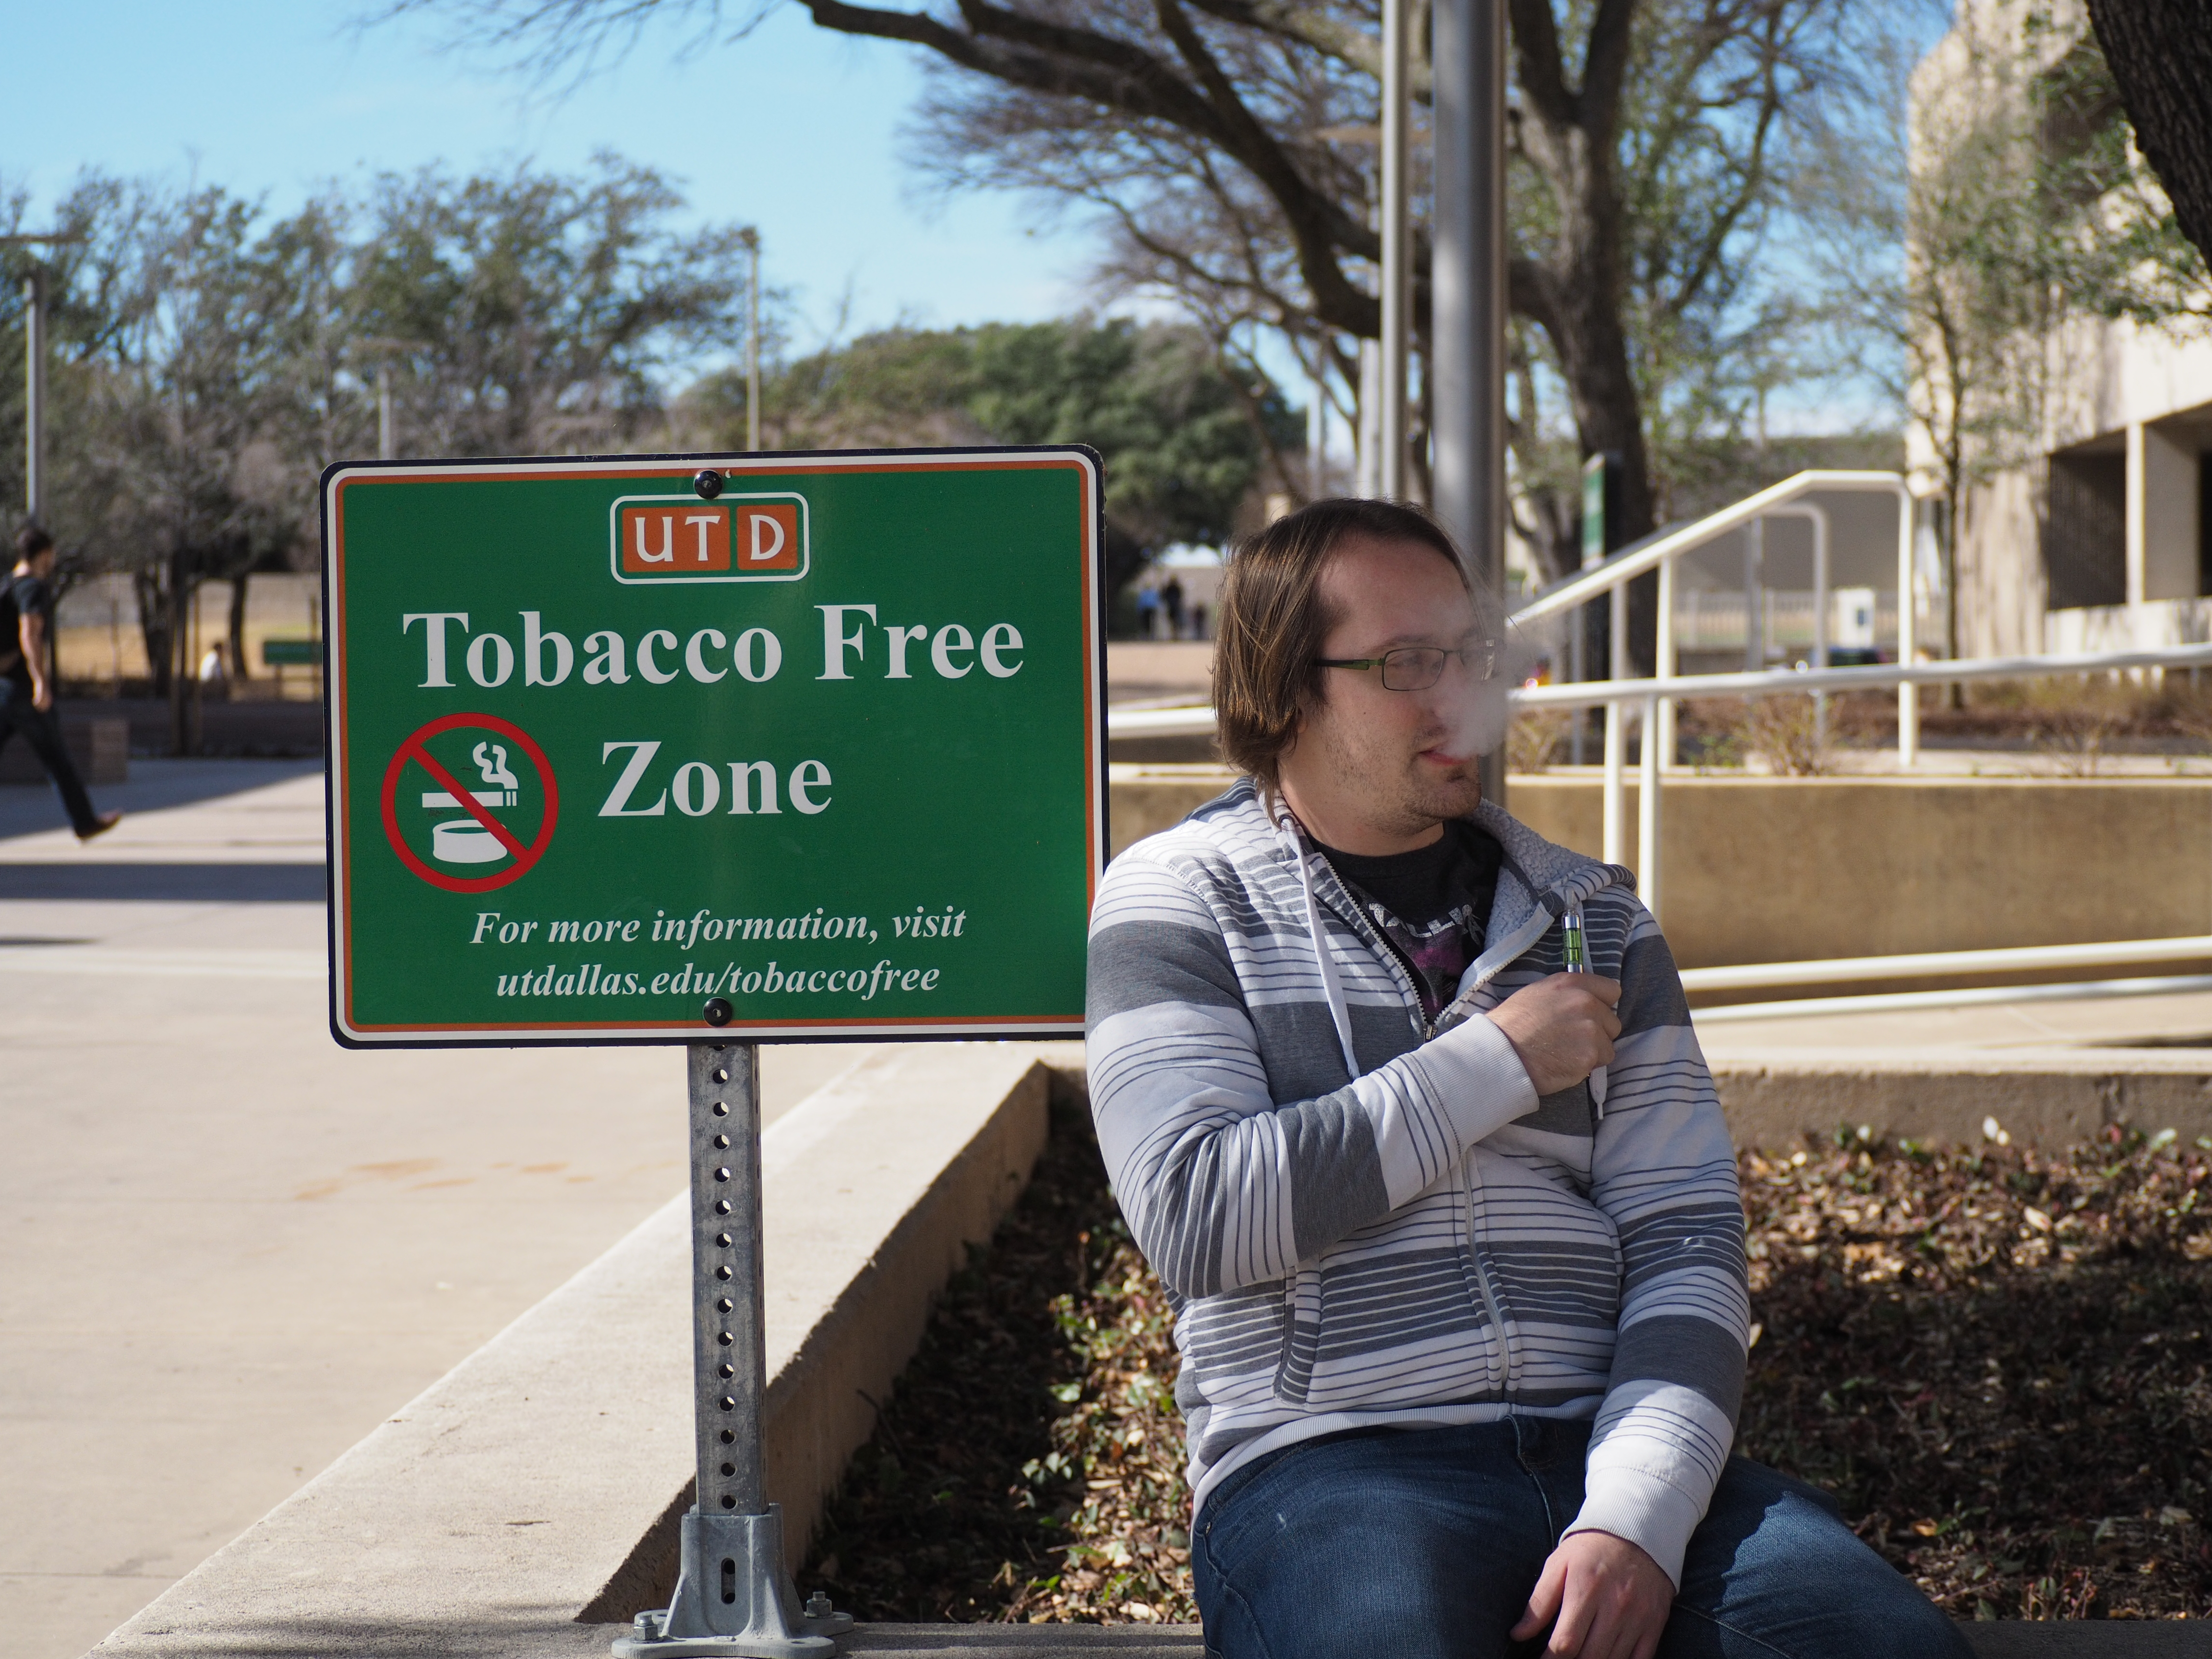 Tobacco to be banned on campus